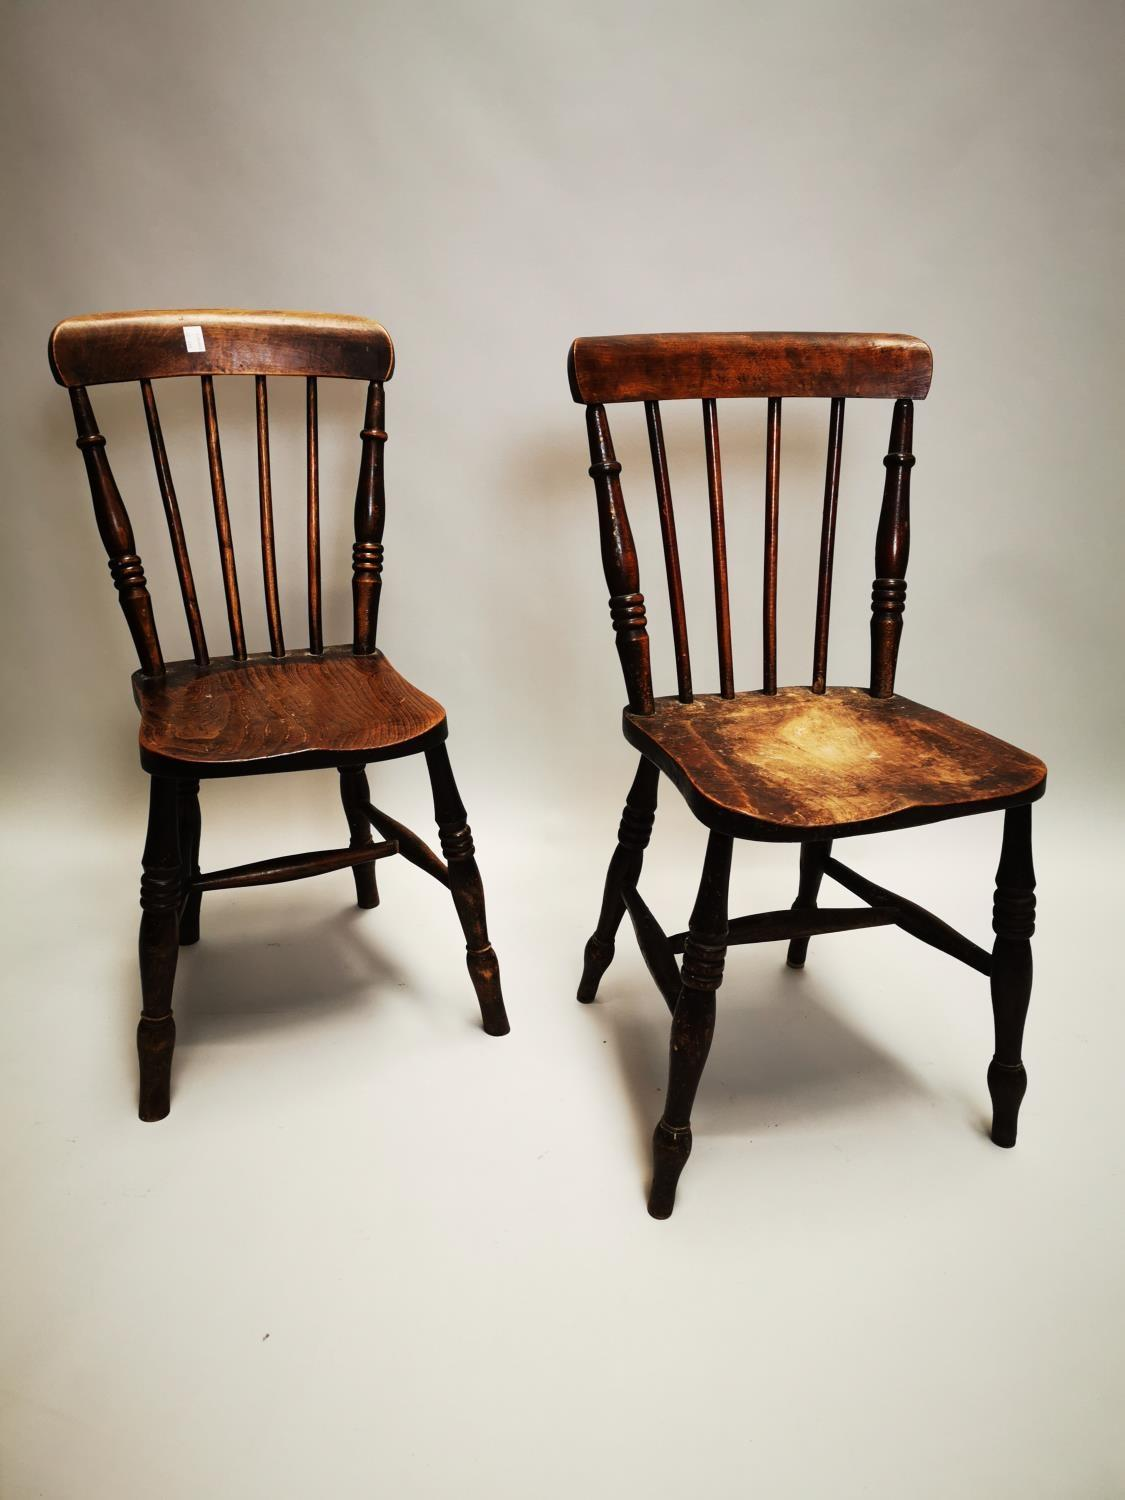 Pair of 19th C. pine and elm kitchen chairs - Image 2 of 8